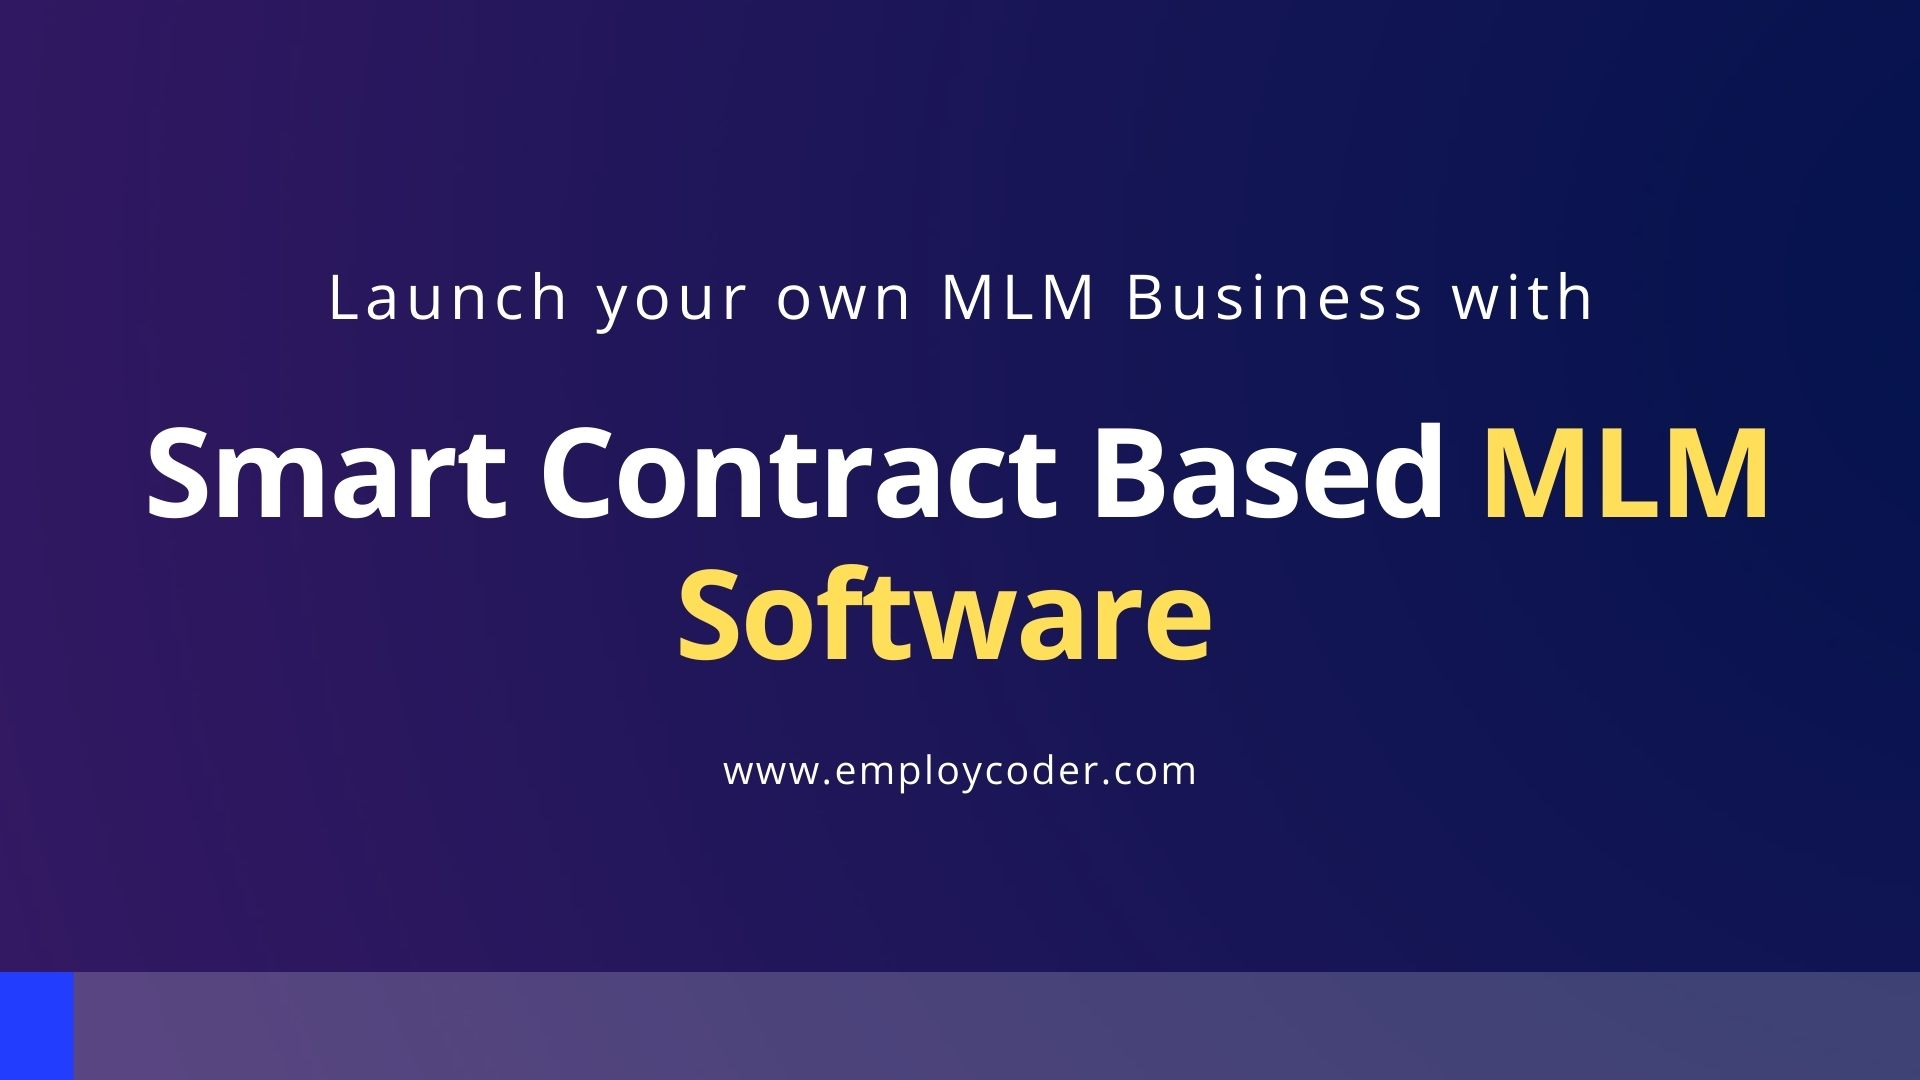 Launch your own MLM Business with Smart Contract Based MLM Software